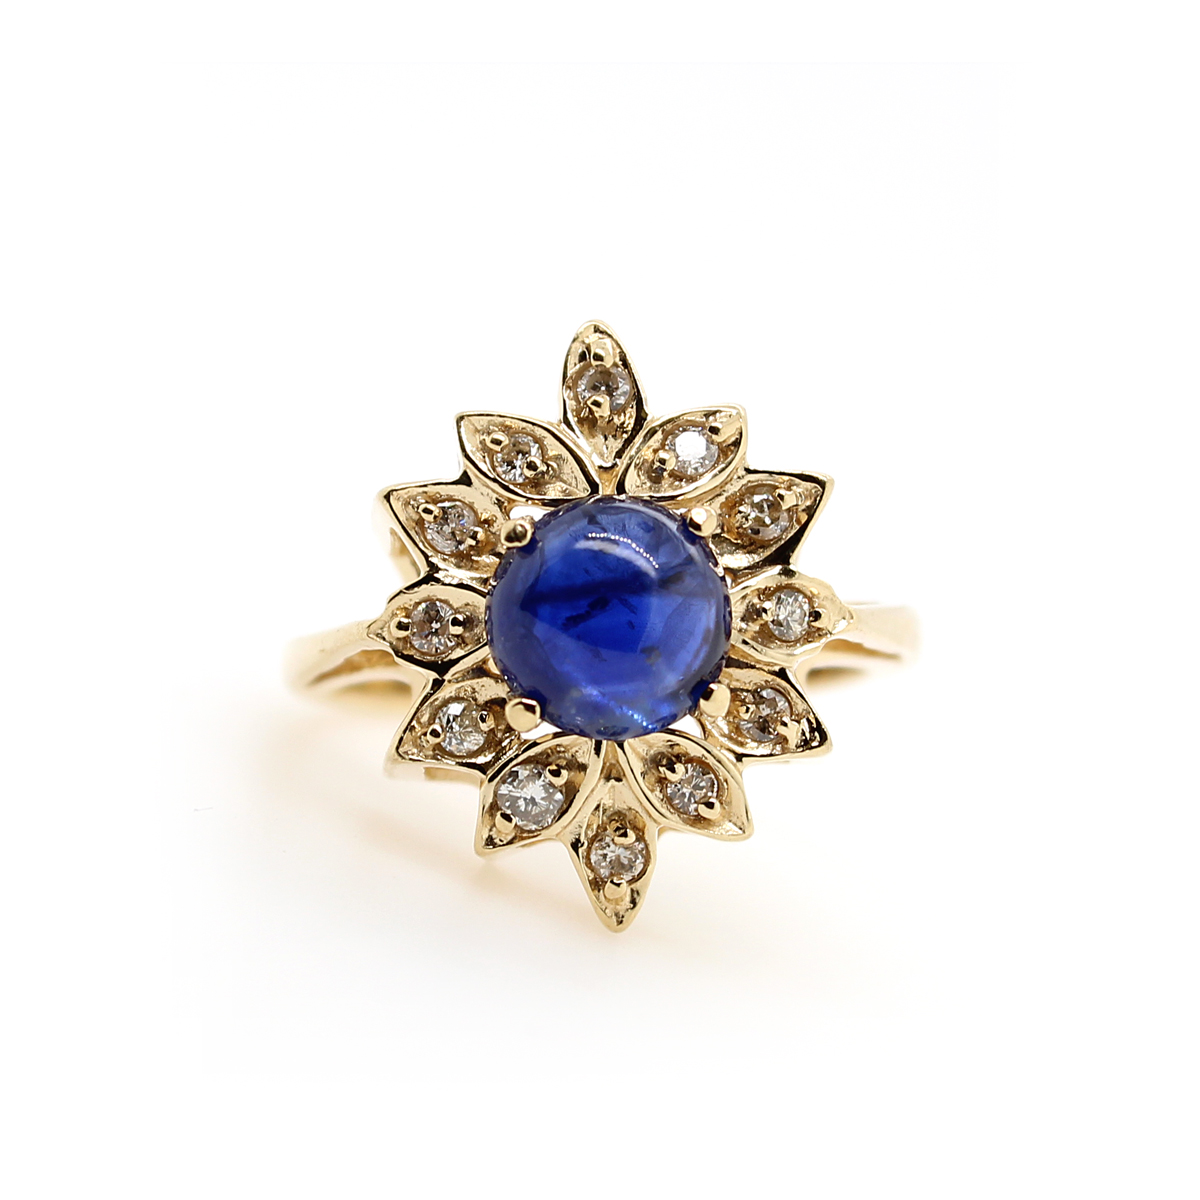 Vintage 14 Karat Yellow Gold Cabochon Blue Sapphire and Diamond Ring